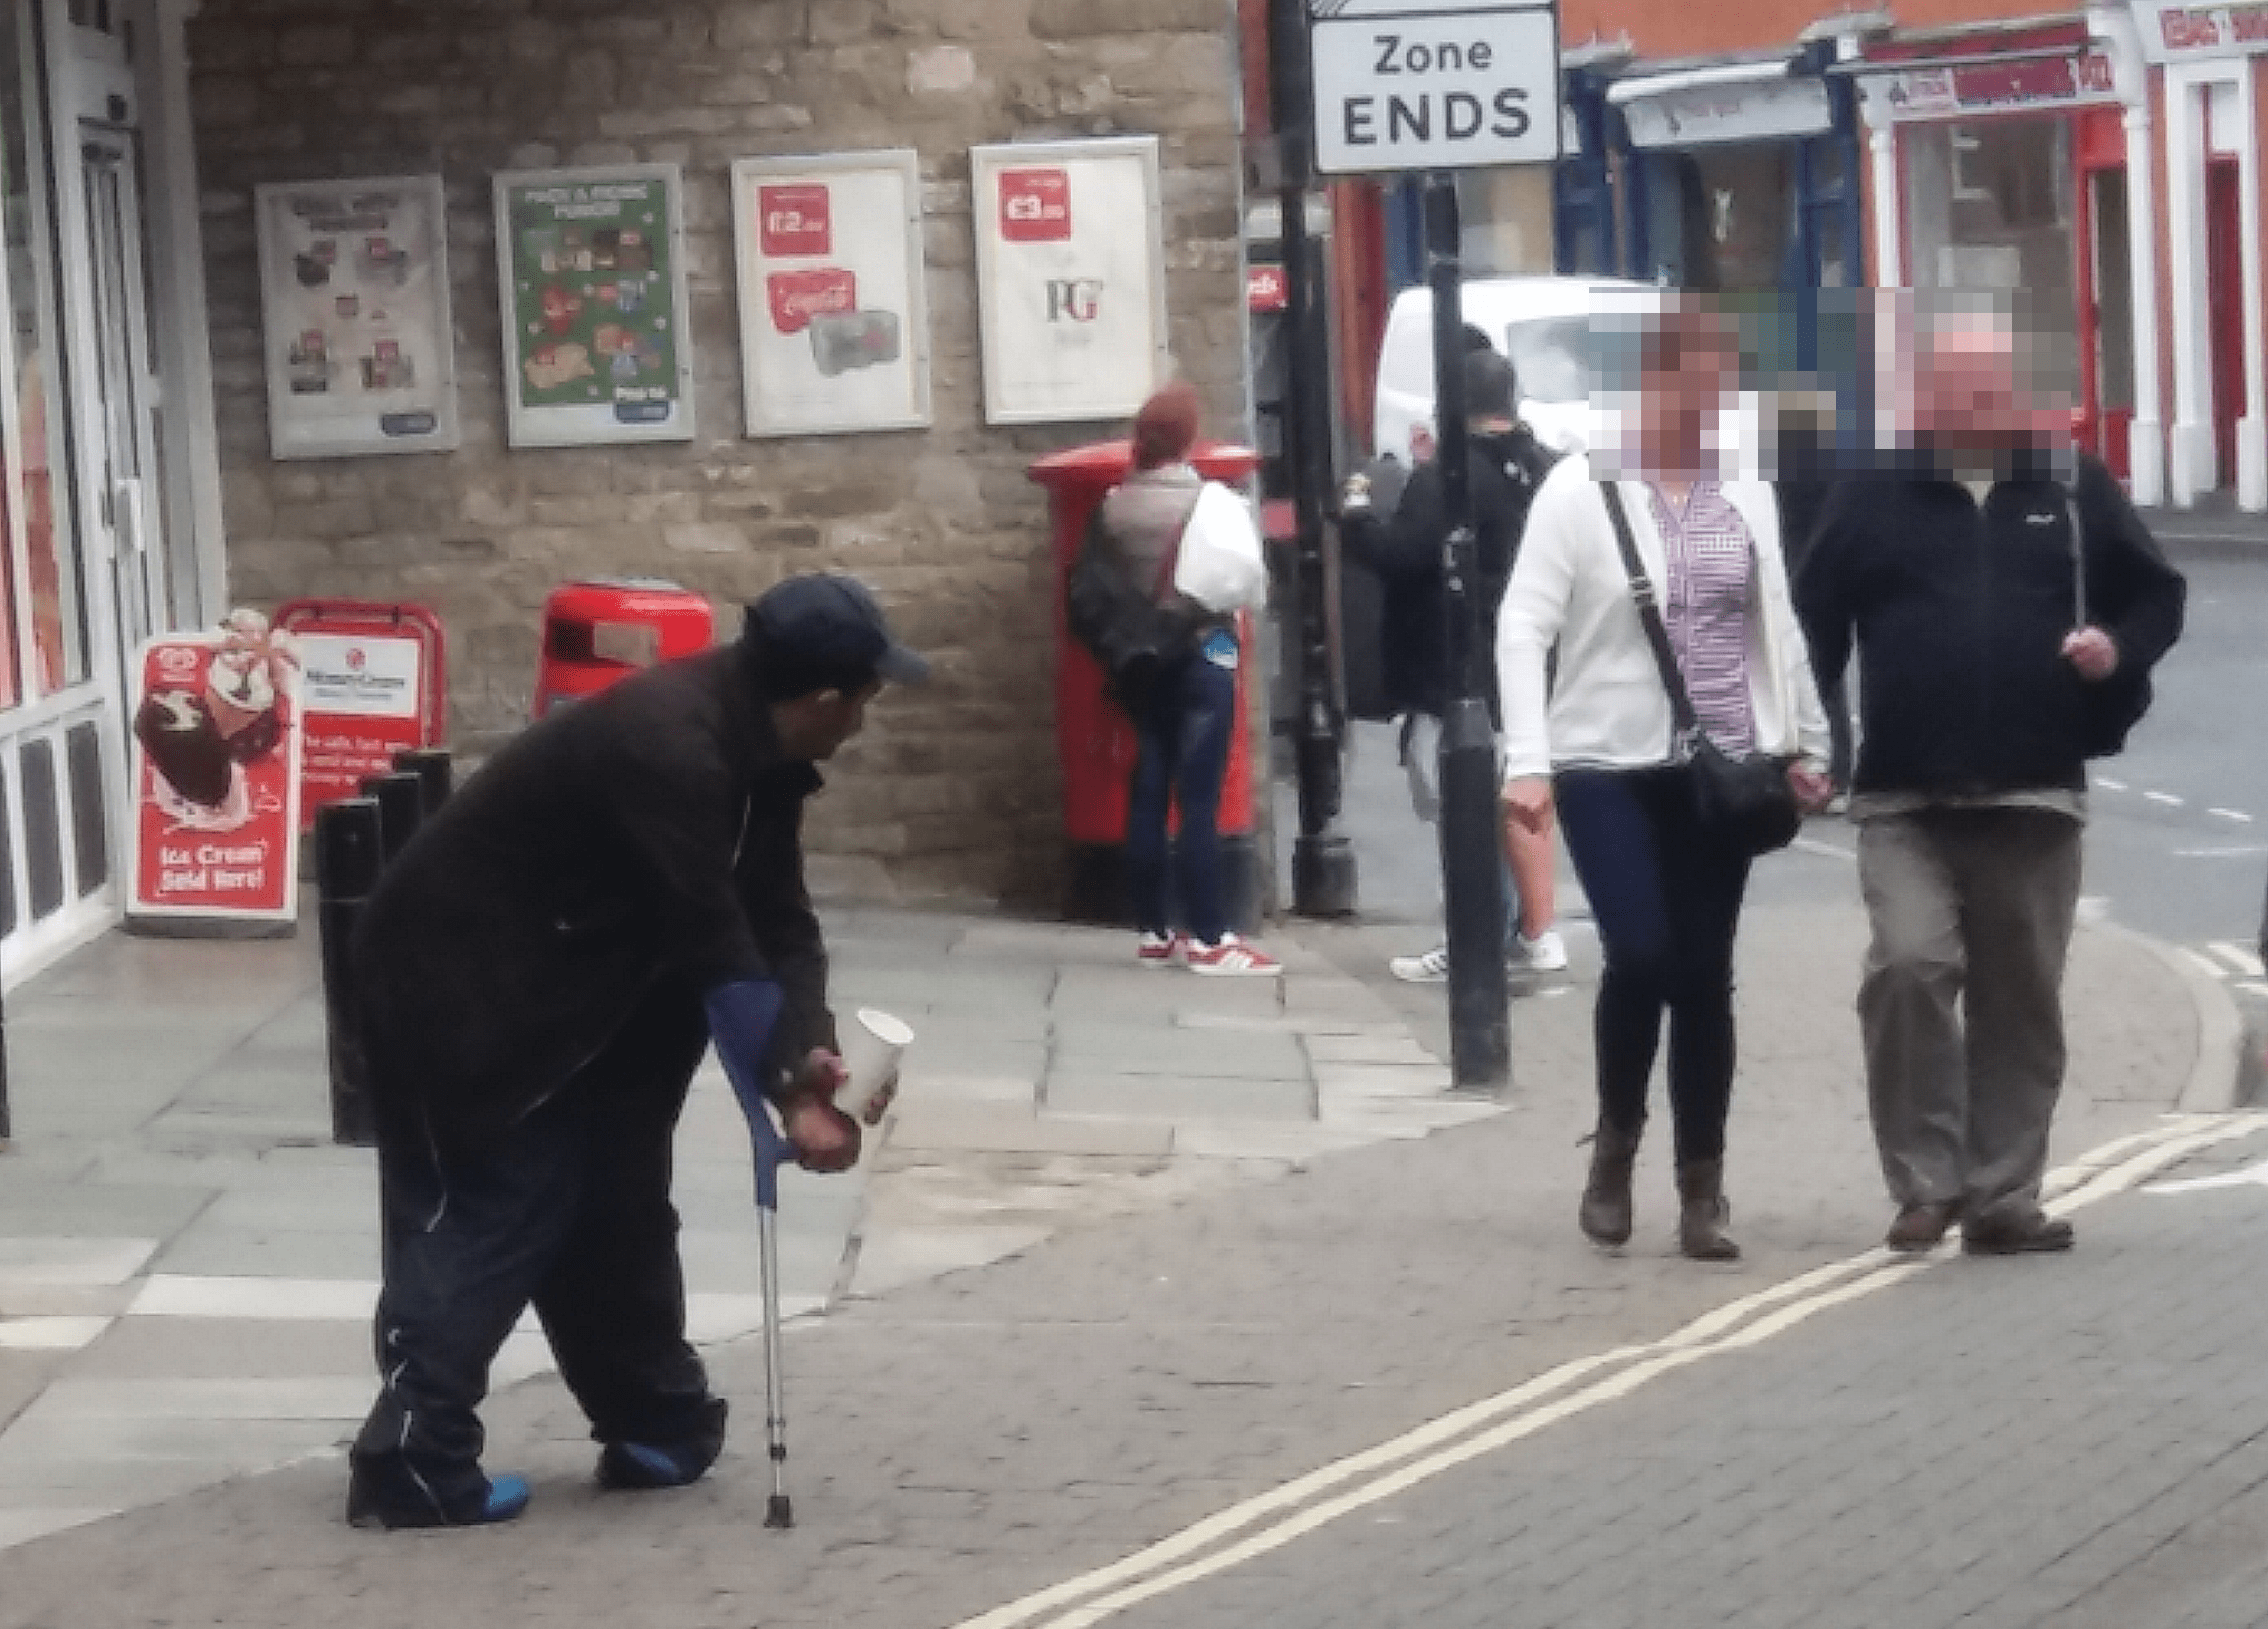 We have Eastern European beggars on the streets of Ludlow – what